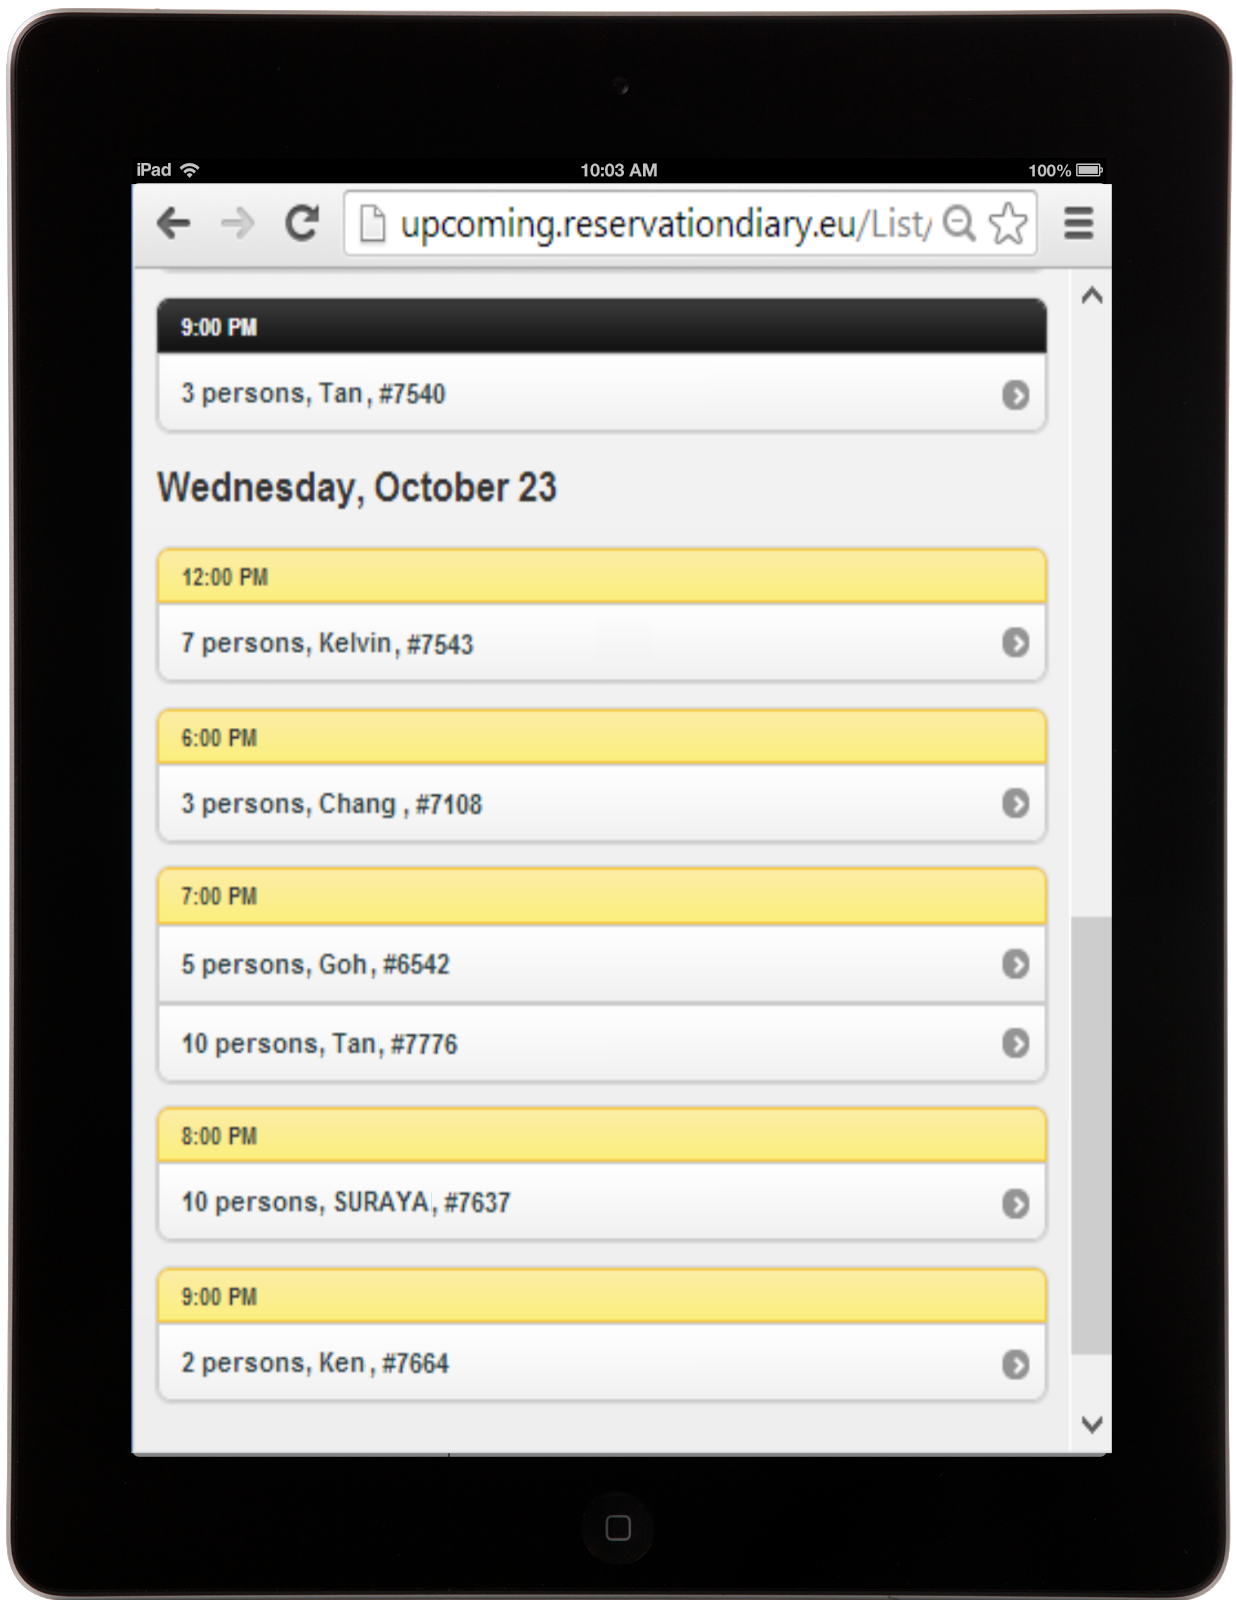 """List of upcoming reservations on Mobile/Tablet PC (Available only for Basic package users). Demo version can be accessed by this link: <a href=""""http://upcoming.reservationdiary.eu/en/Entry2/89a08039-2c68-47c4-978c-3acb3e9989ea"""">Open demo version</a>"""